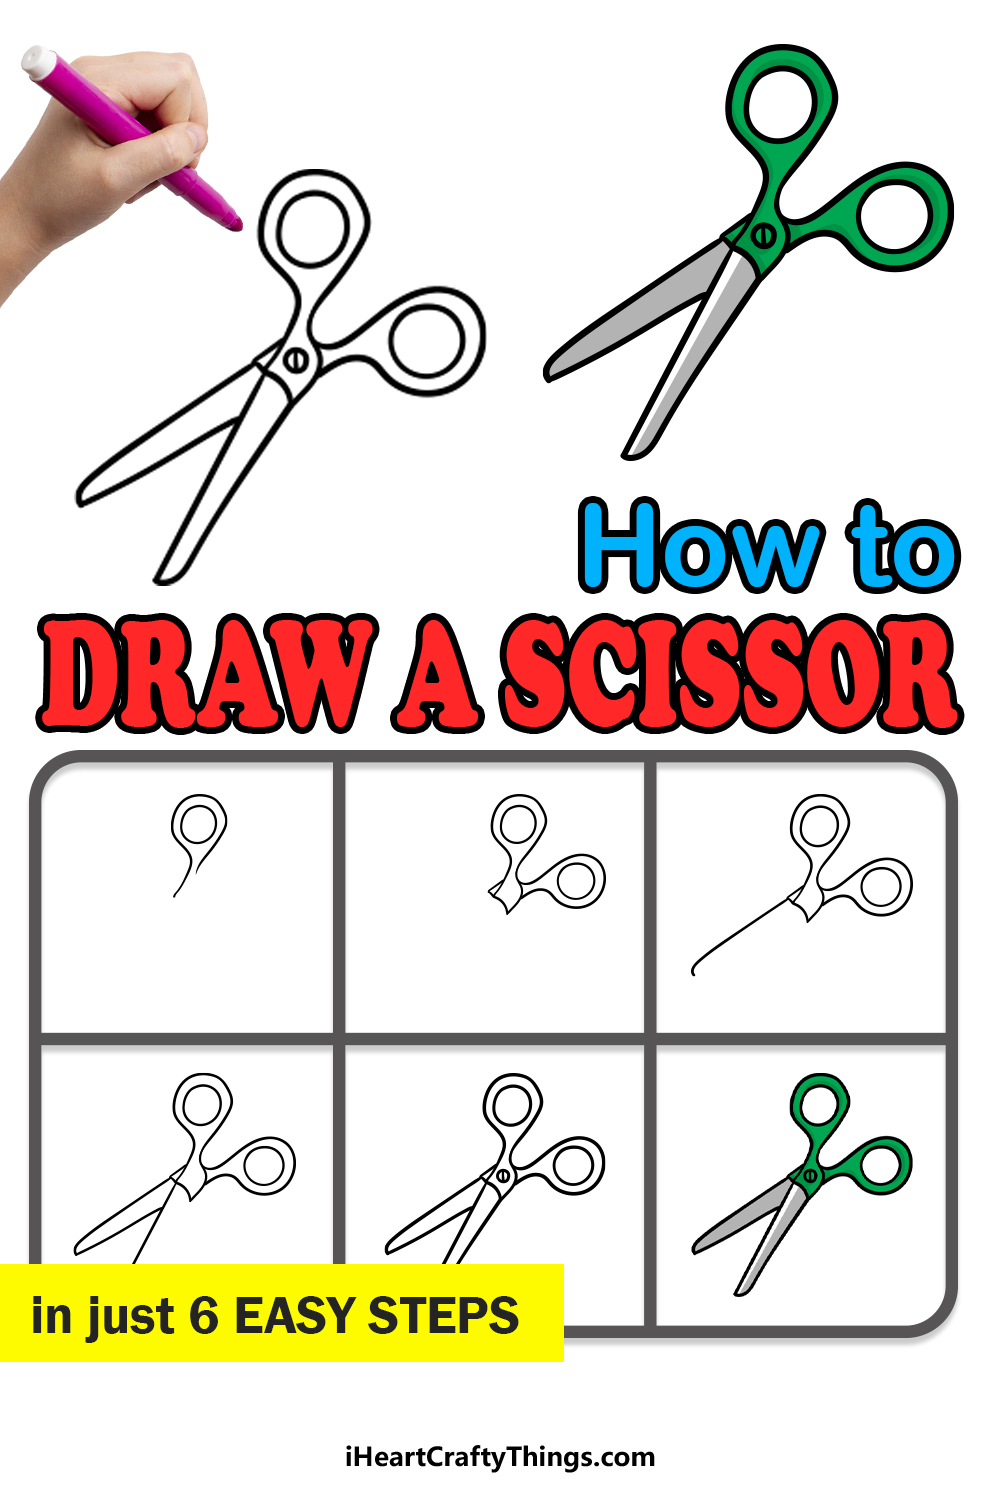 how to draw scissors in 6 easy steps